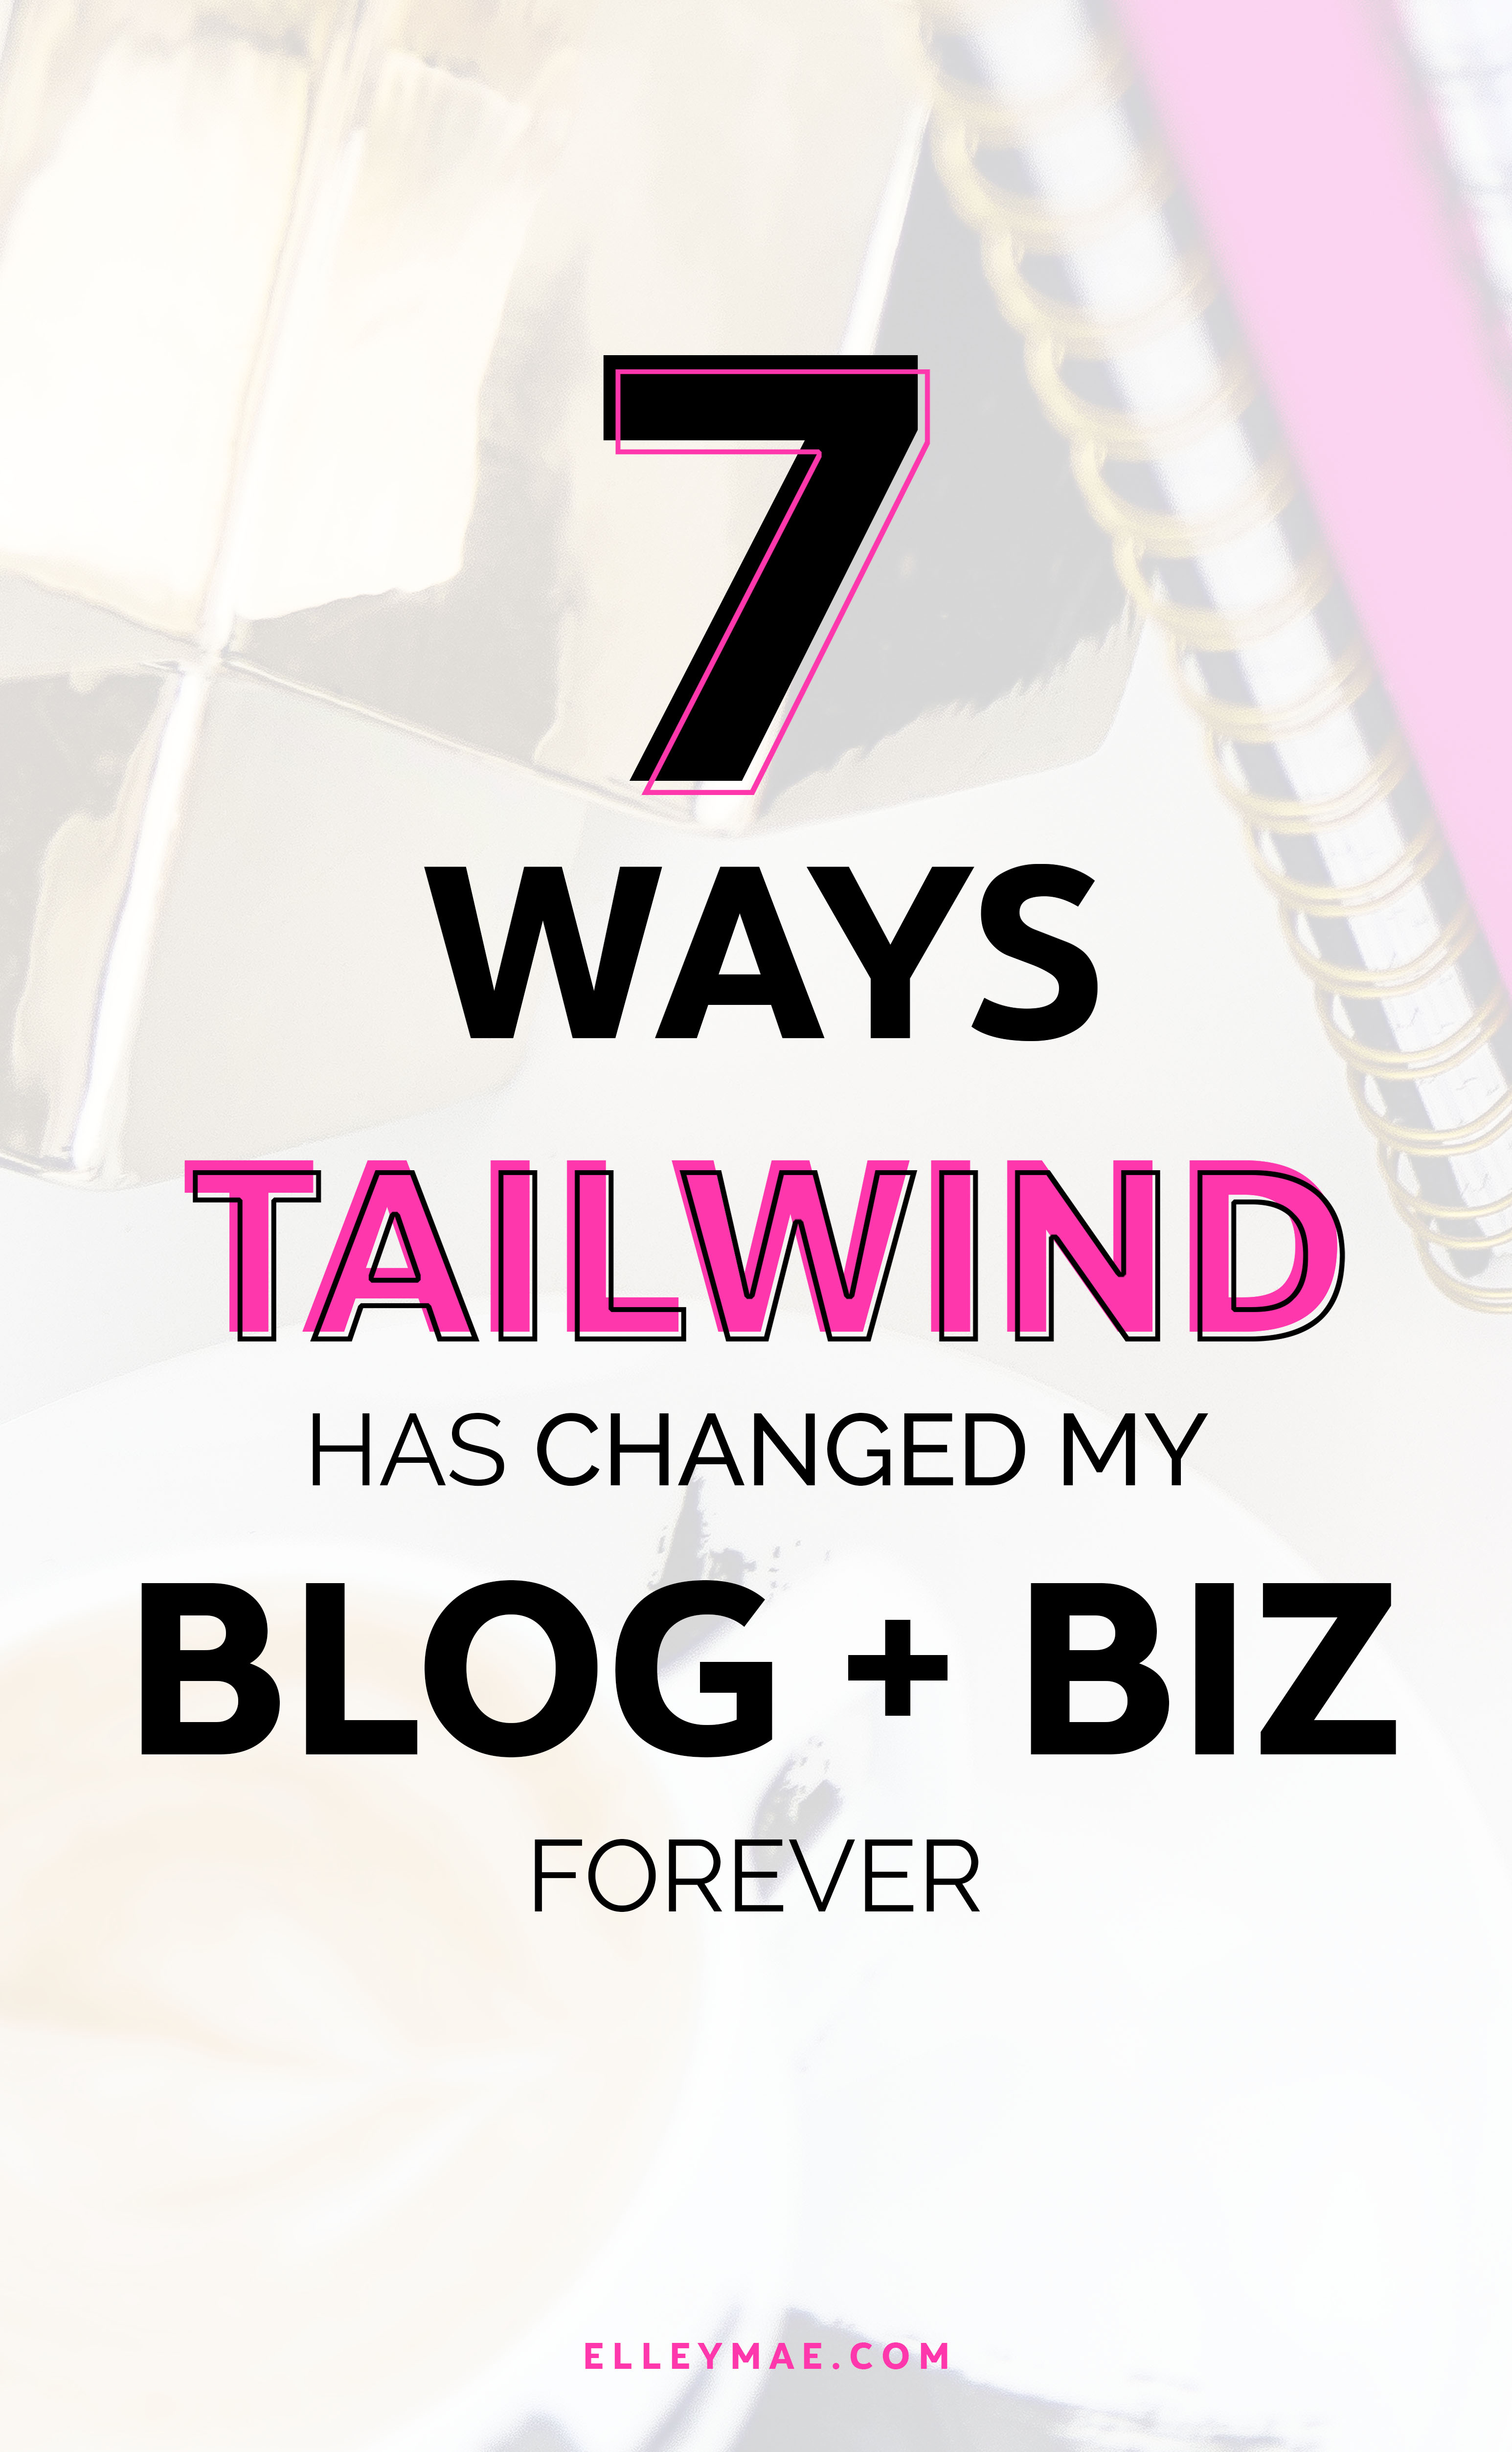 If you're looking for the ultimate scheduling tool for Pinterest, than look no further than Tailwind. Increasing my Pinterest reach from just 30k to 300k in a matter of months is only one of the reasons why Tailwind is THE ULTIMATE tool for Pinterest. I've grown my email subscribers, affiliate income, passive income, ecourse sales, ebook sales & more - all through Tailwind! Trust me, you've gotta see this to believe it - Learn more at ElleyMae.com